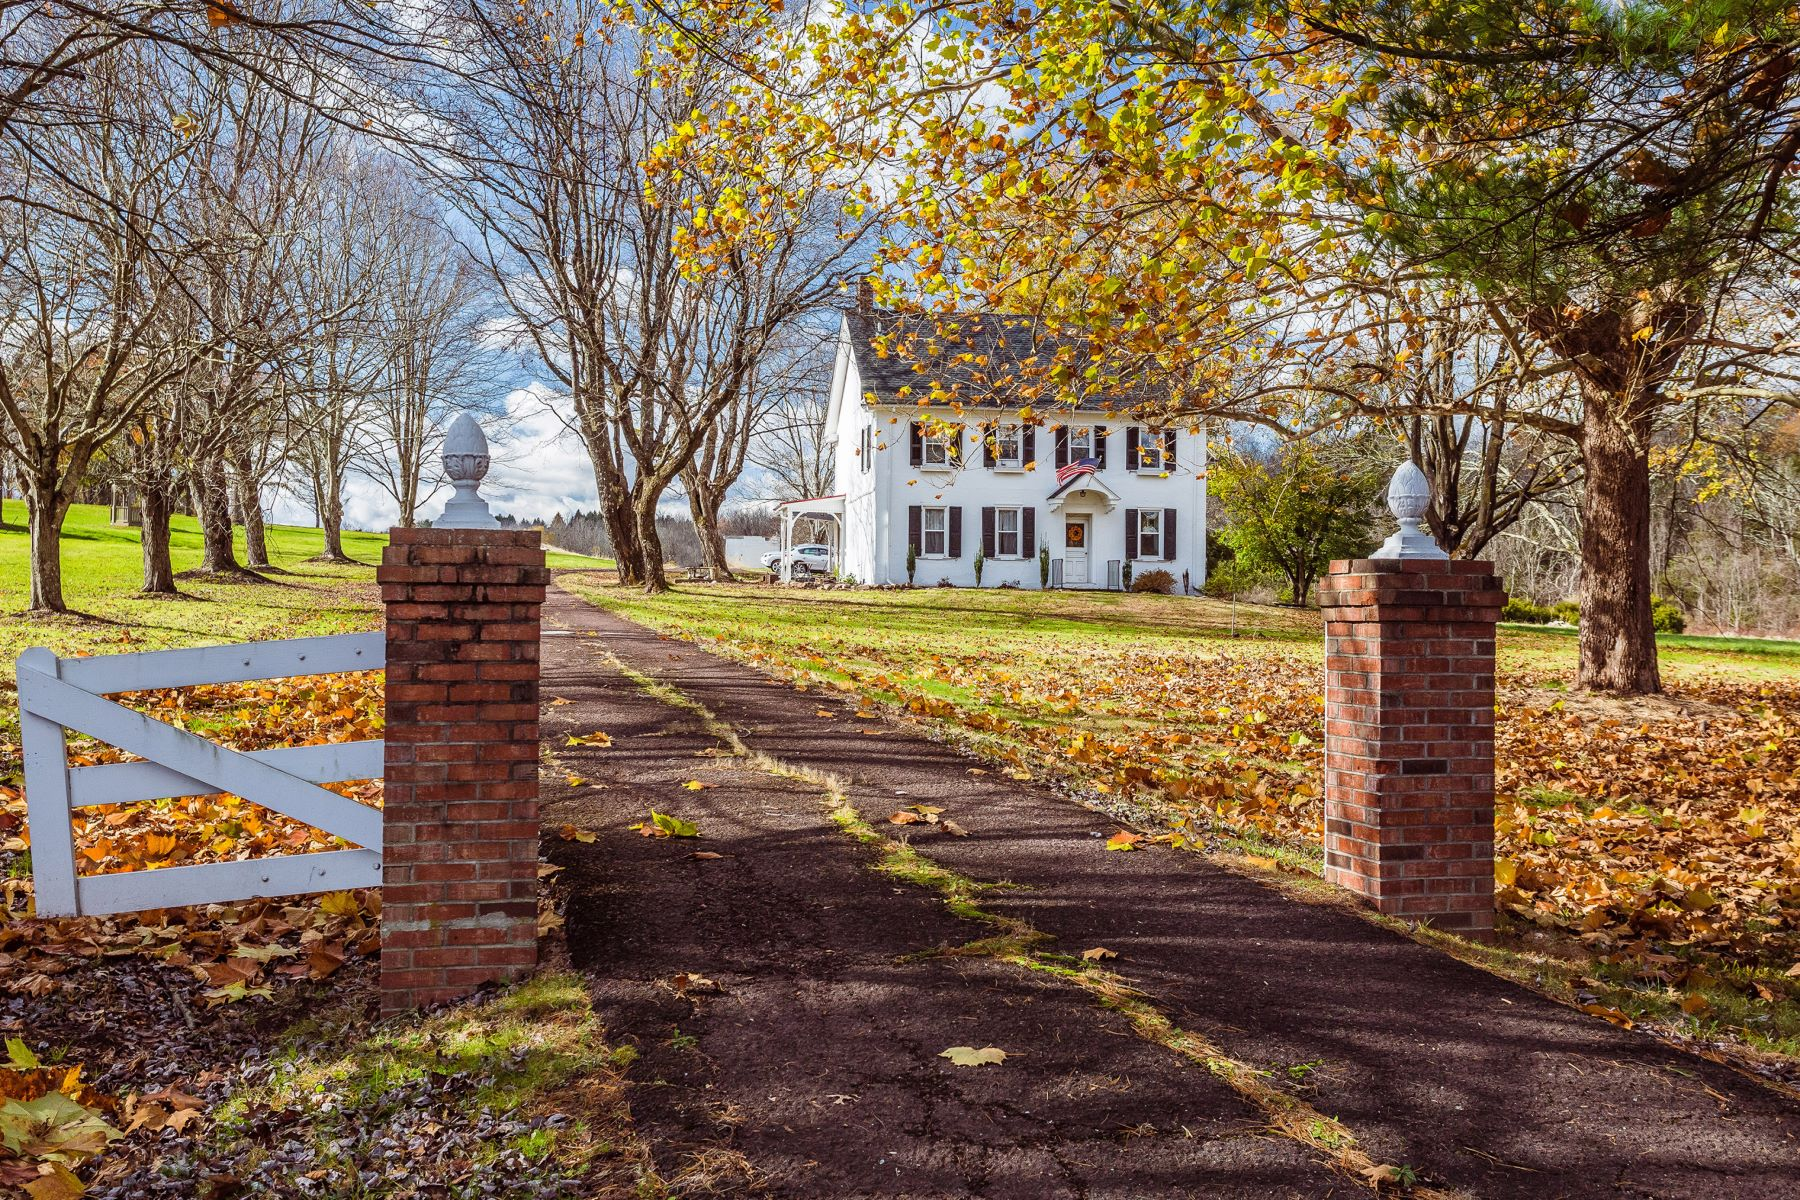 Single Family Homes for Sale at 7364 EASTON RD Pipersville, Pennsylvania 18947 United States